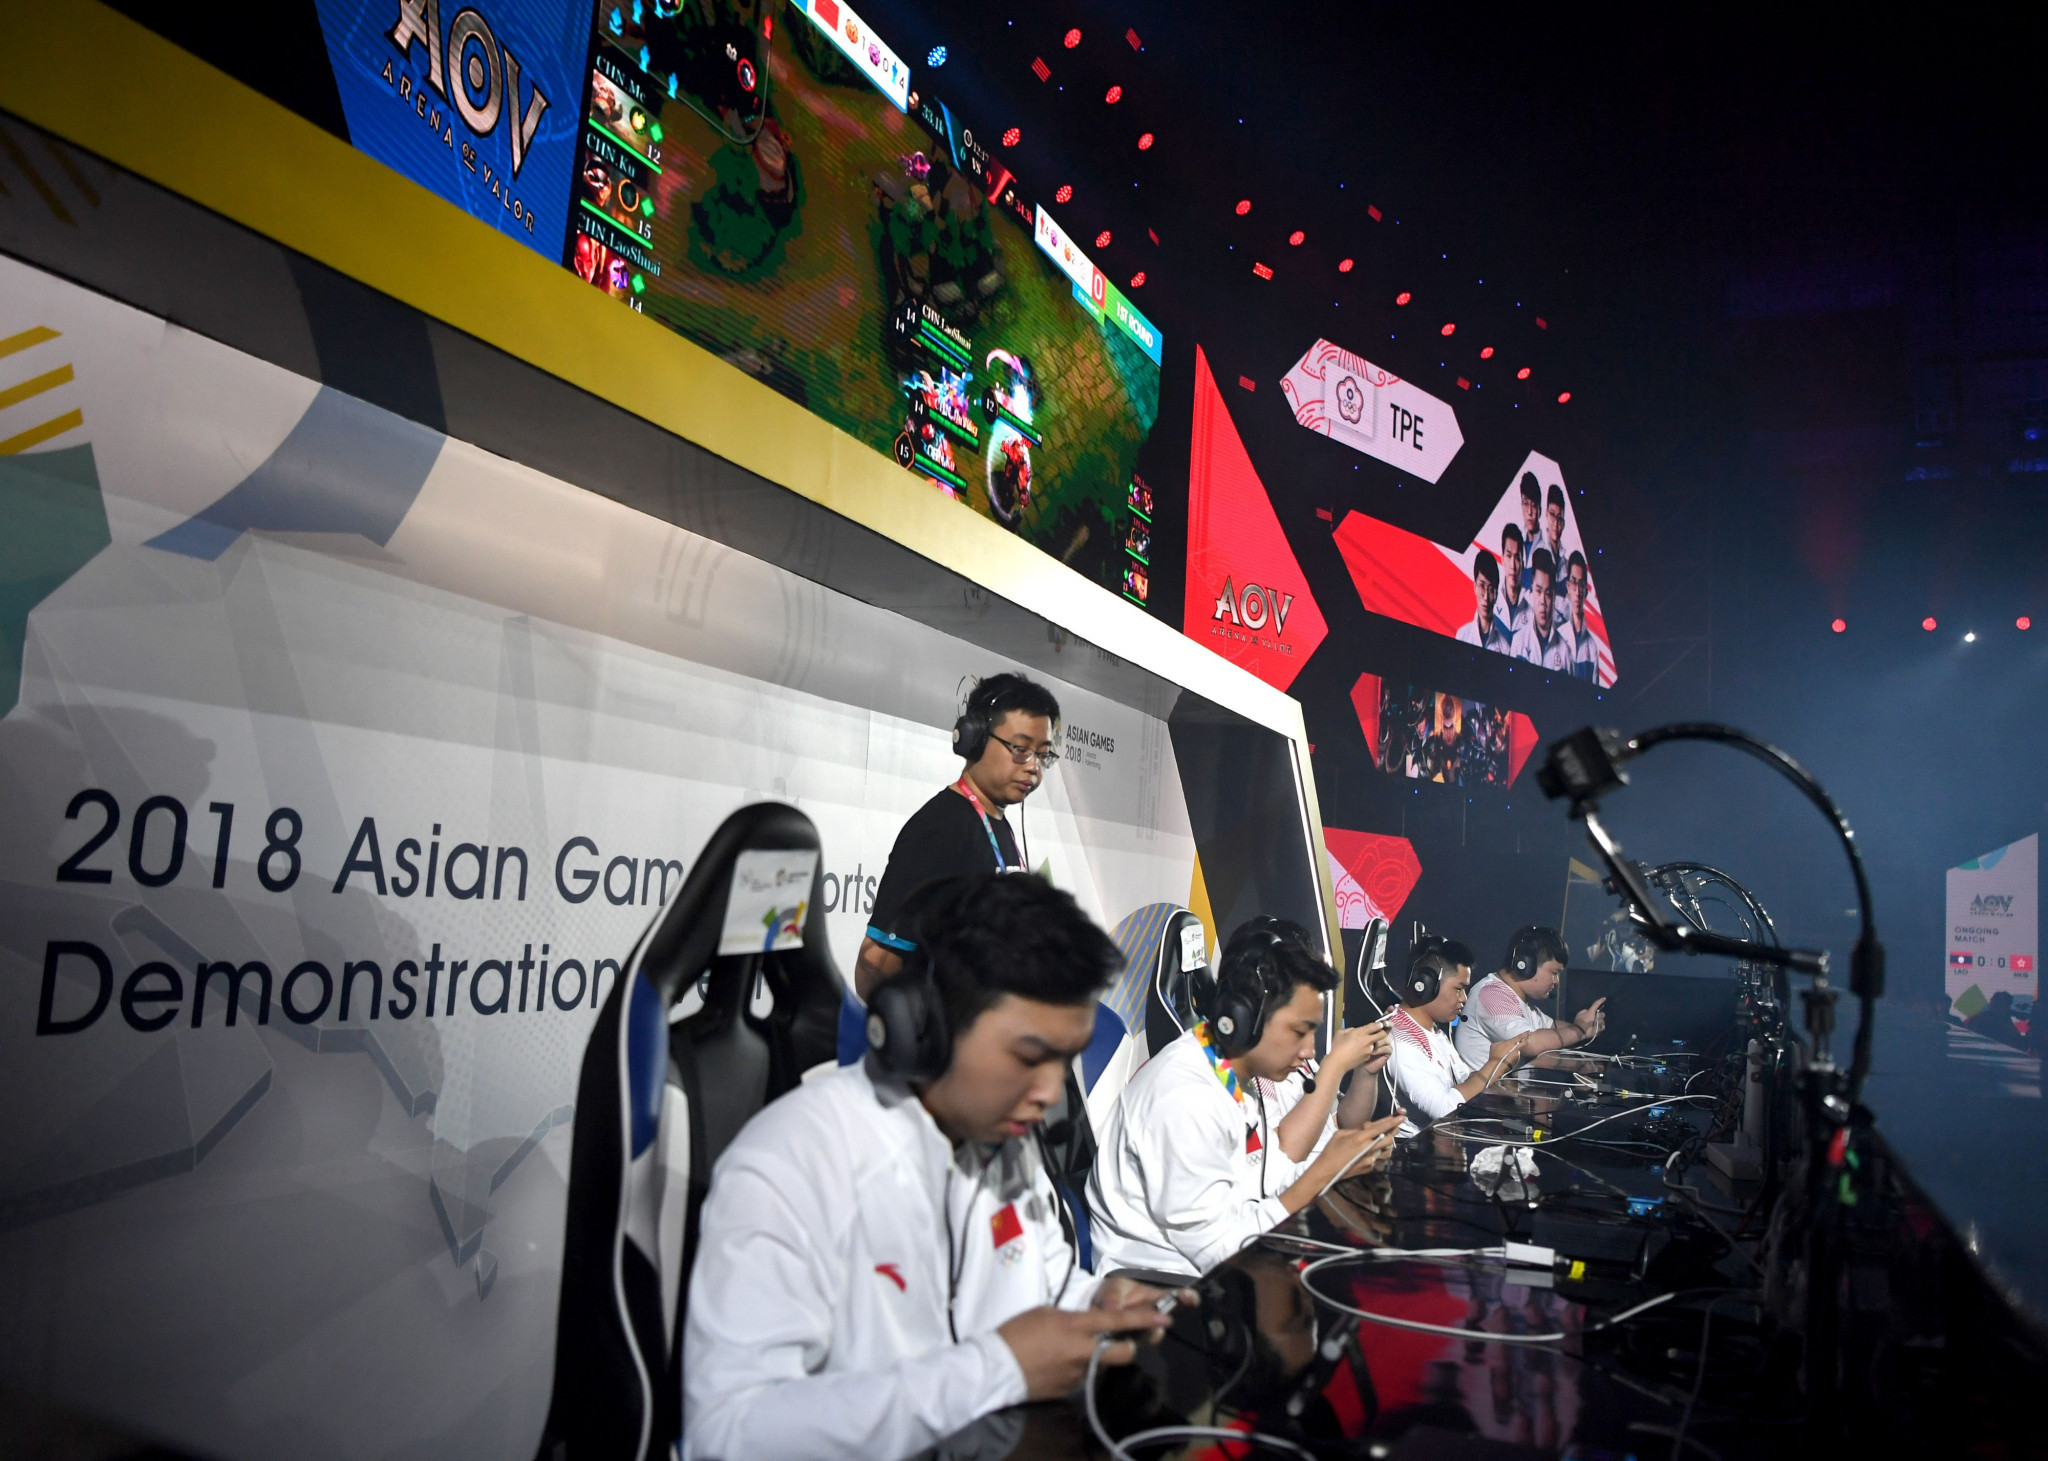 Esports was a demonstration sport at the 2018 Asian Games ©Getty Images